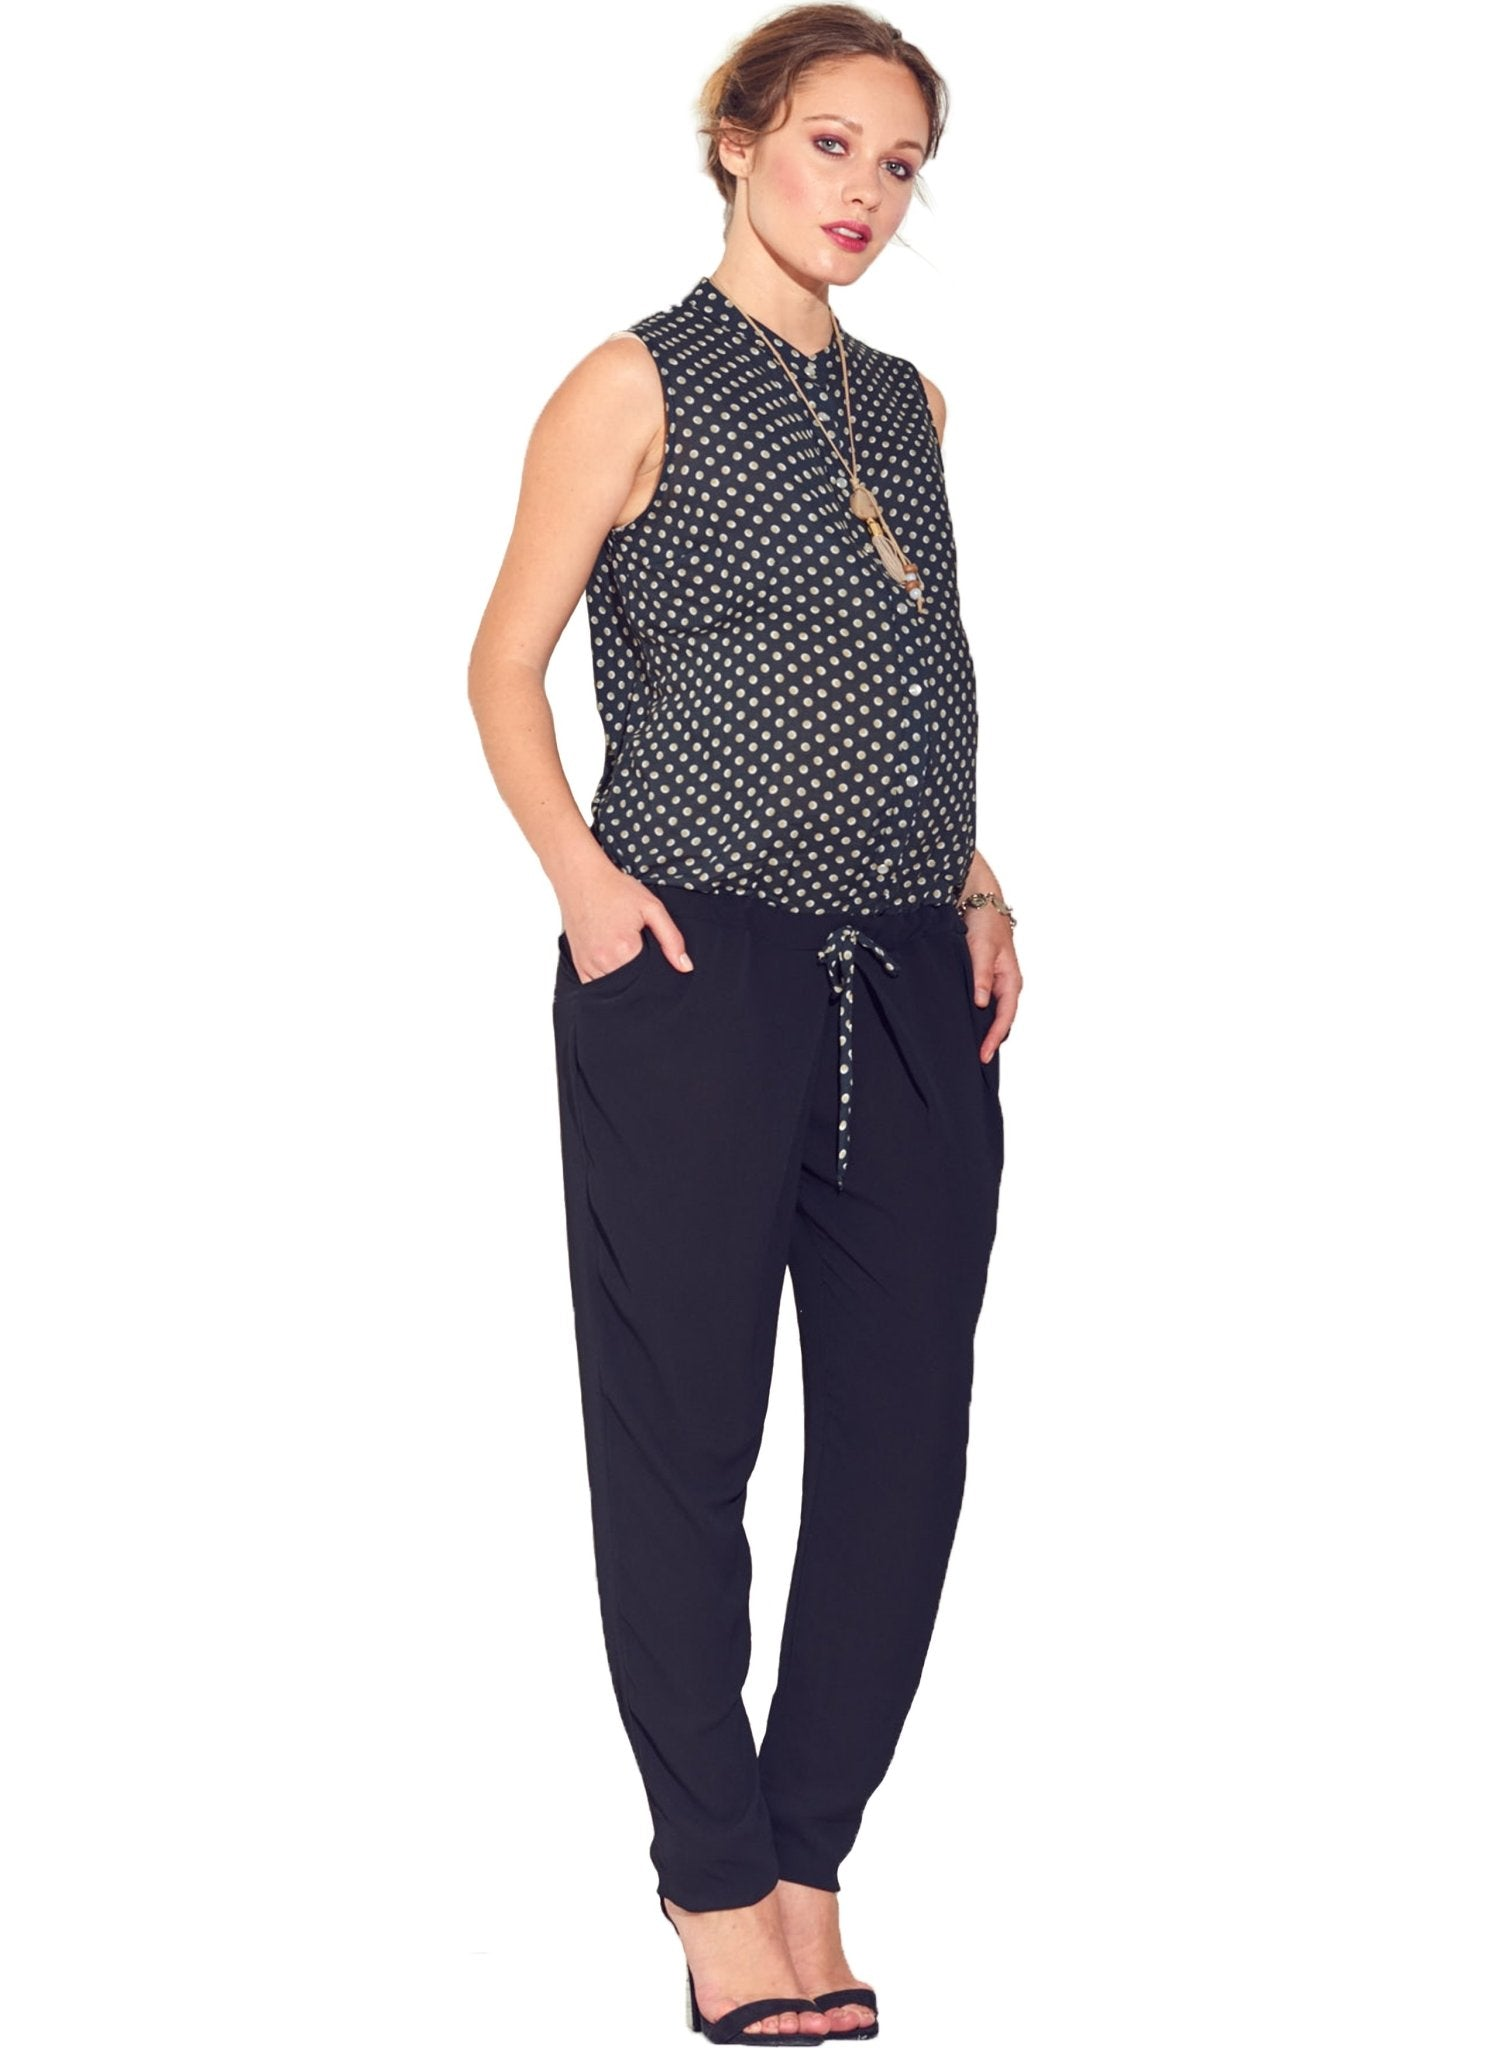 Dotted Sleeveless Maternity Jumpsuit - Mums and Bumps